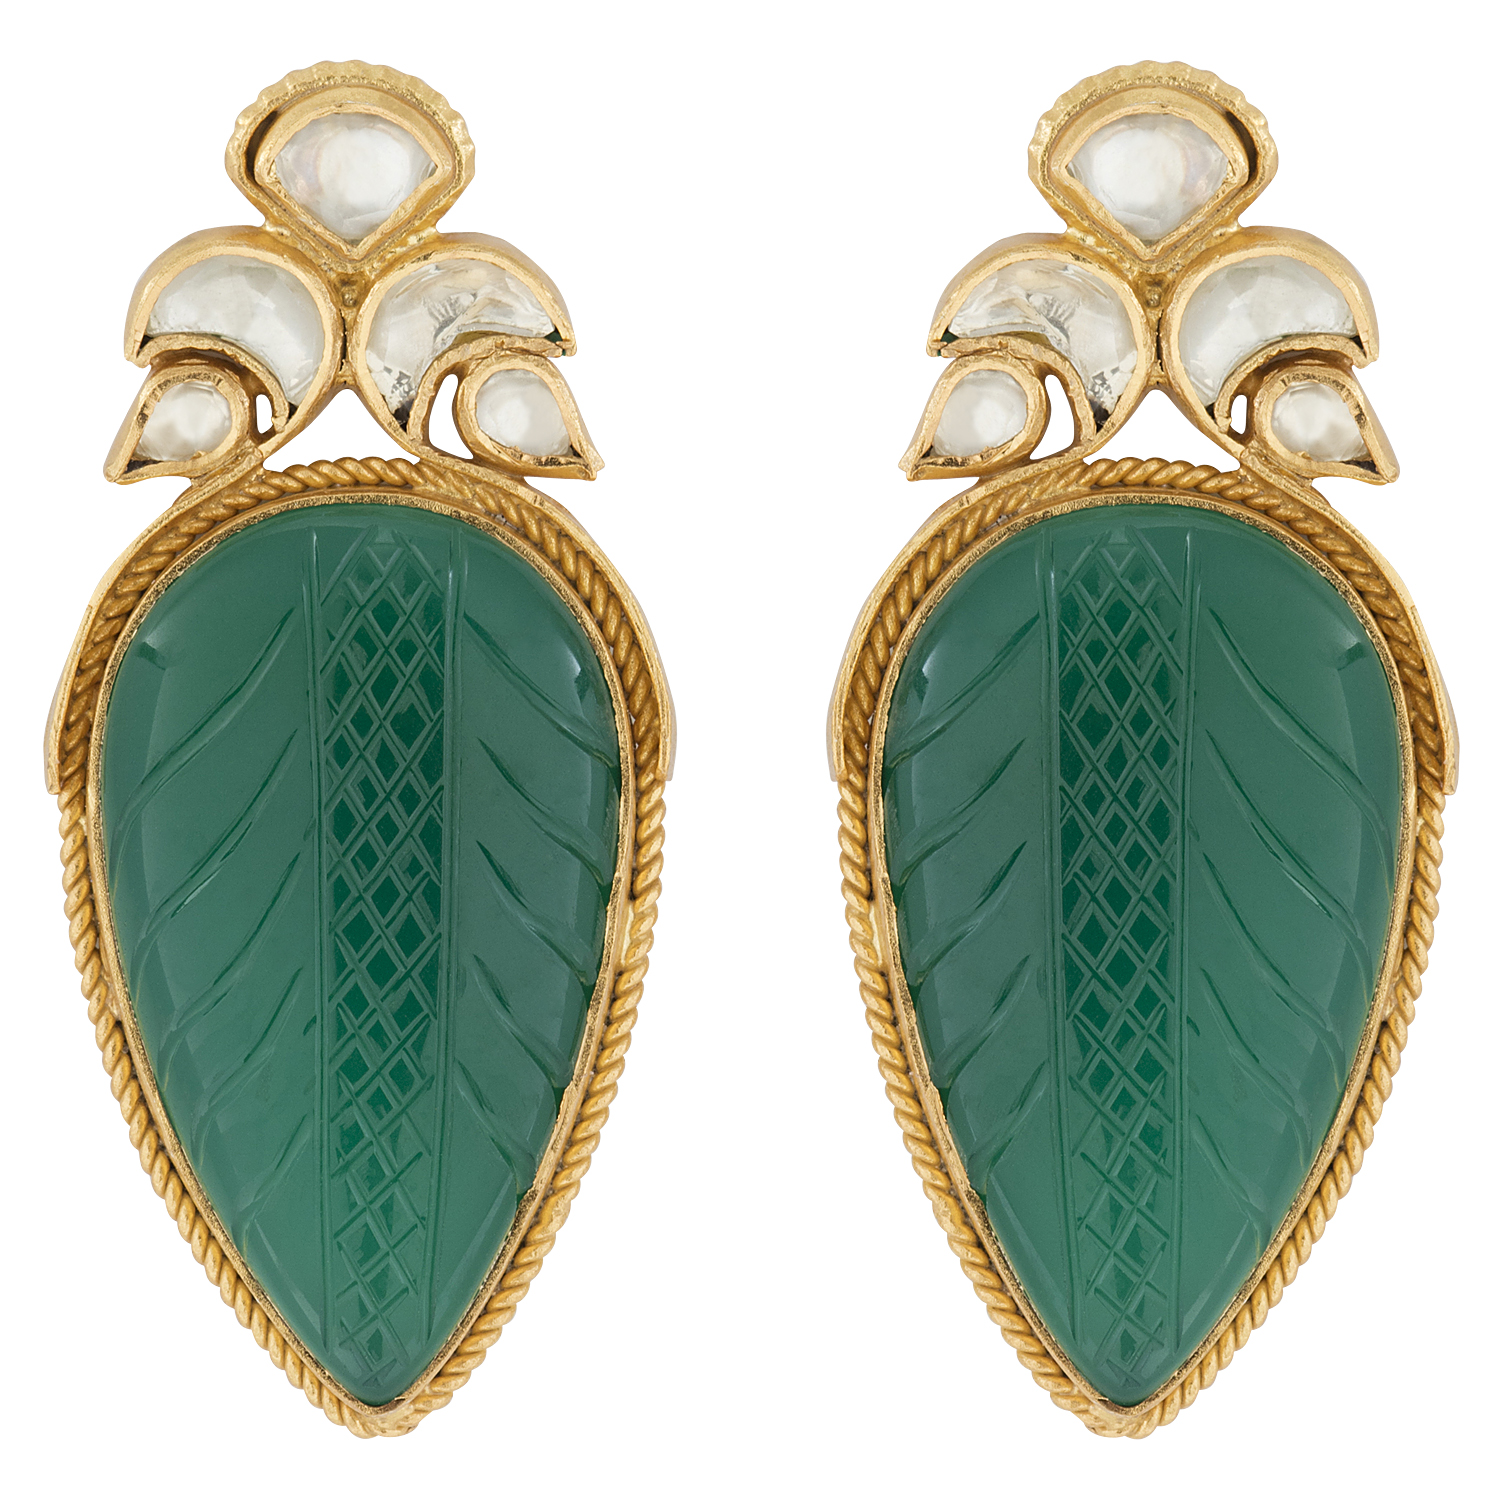 Heritage Carved Green Onyx and Crystal Earrings